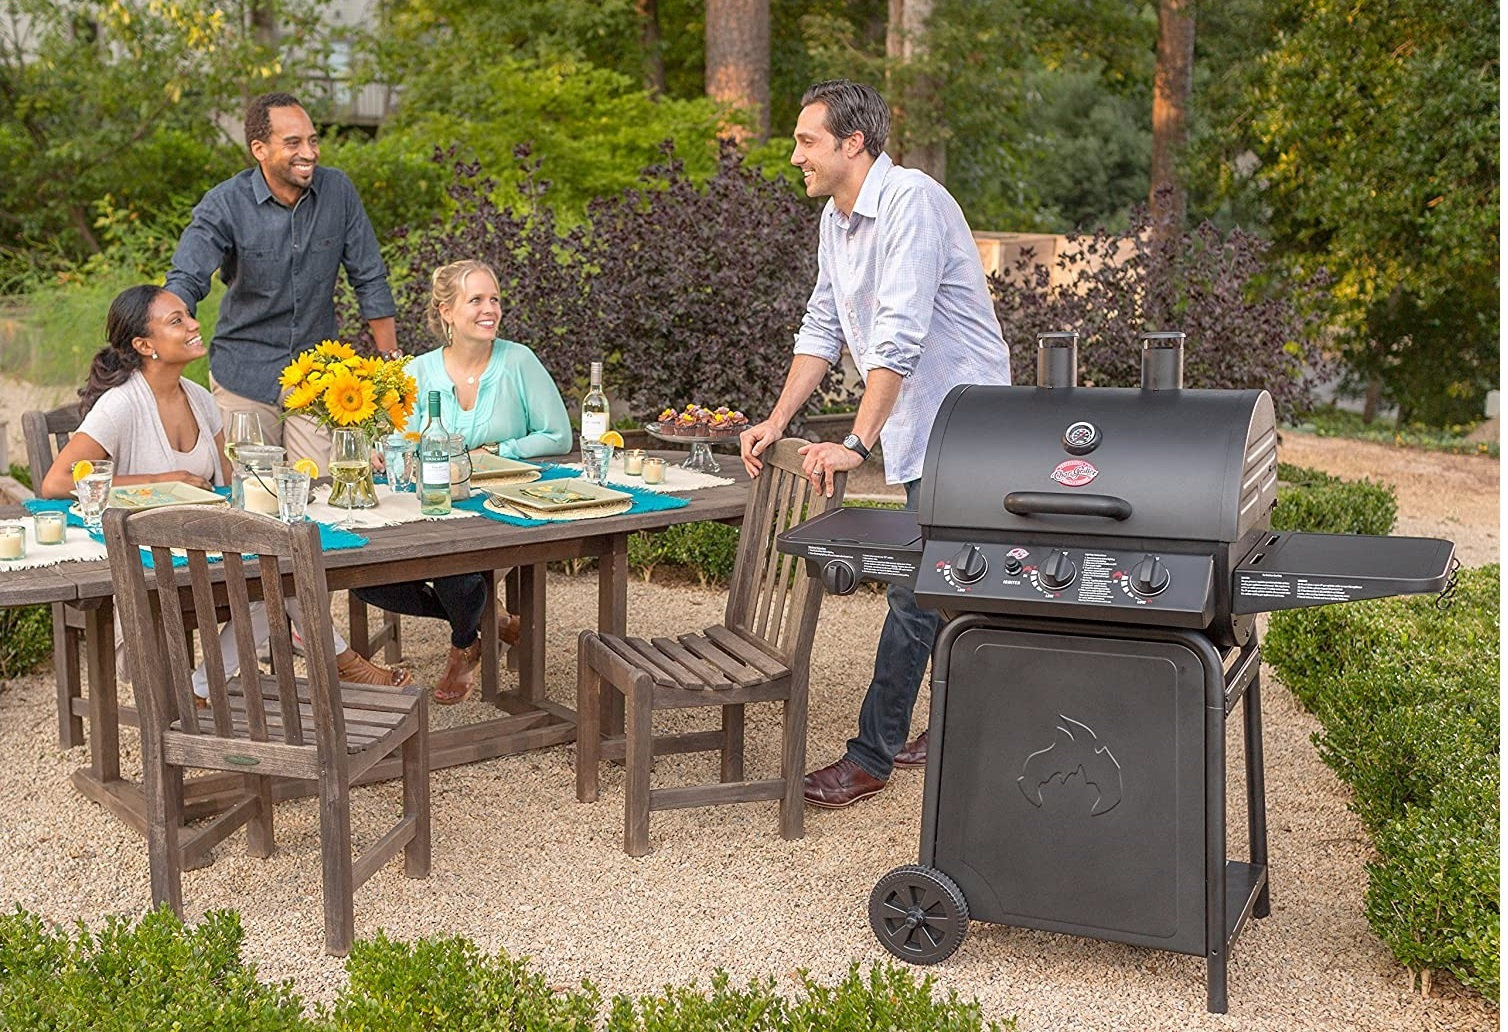 TOP 5 BEST GAS GRILLS IN 2020 REVIEWS